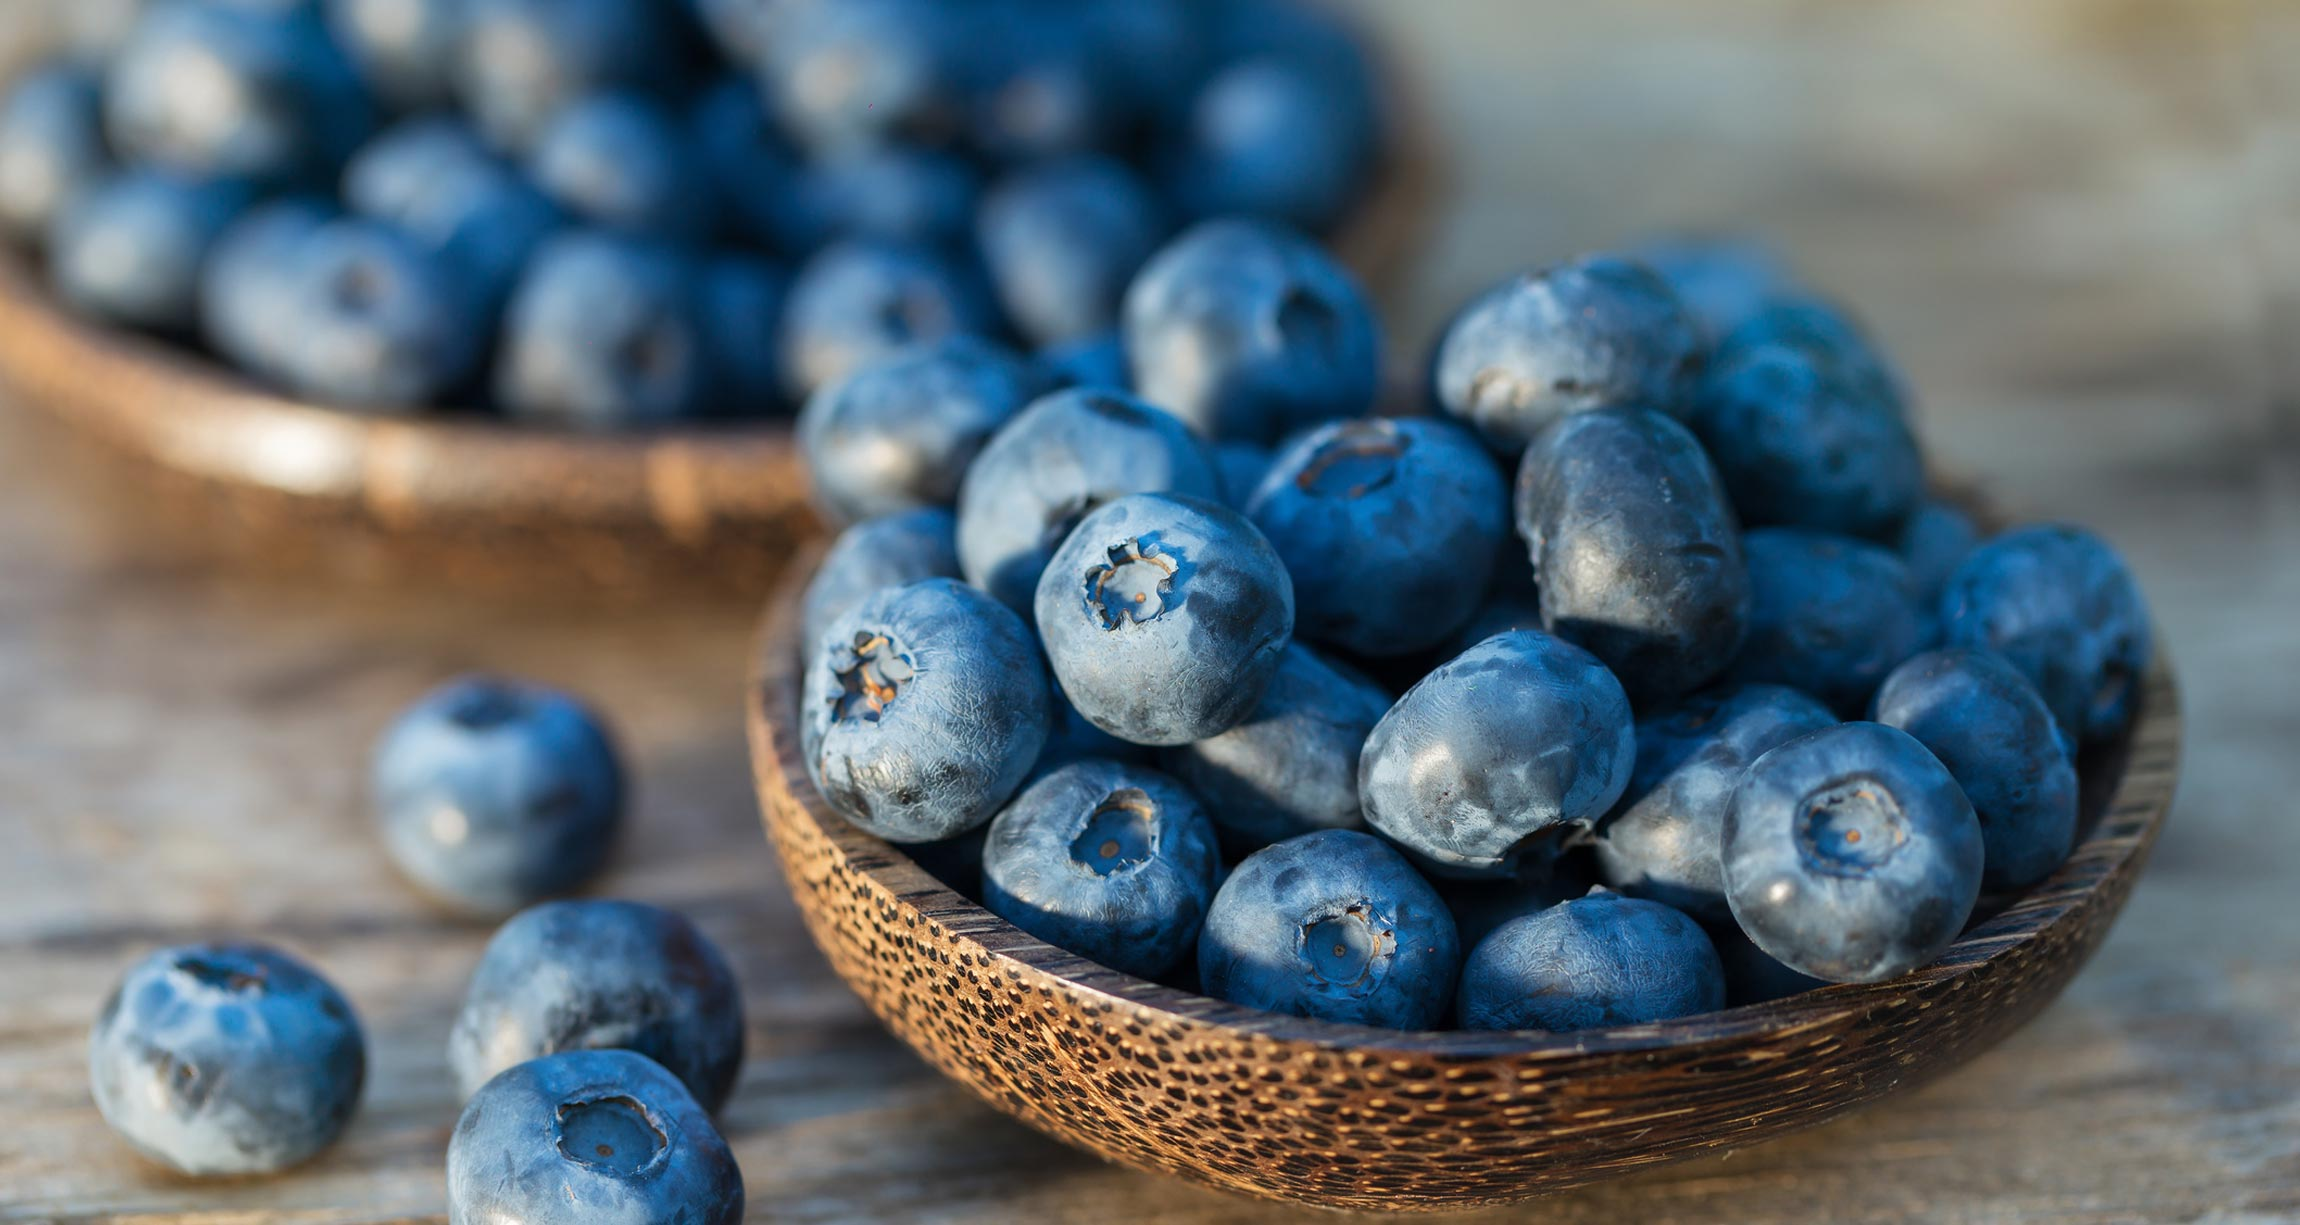 blog-featured_blueberries-20180516